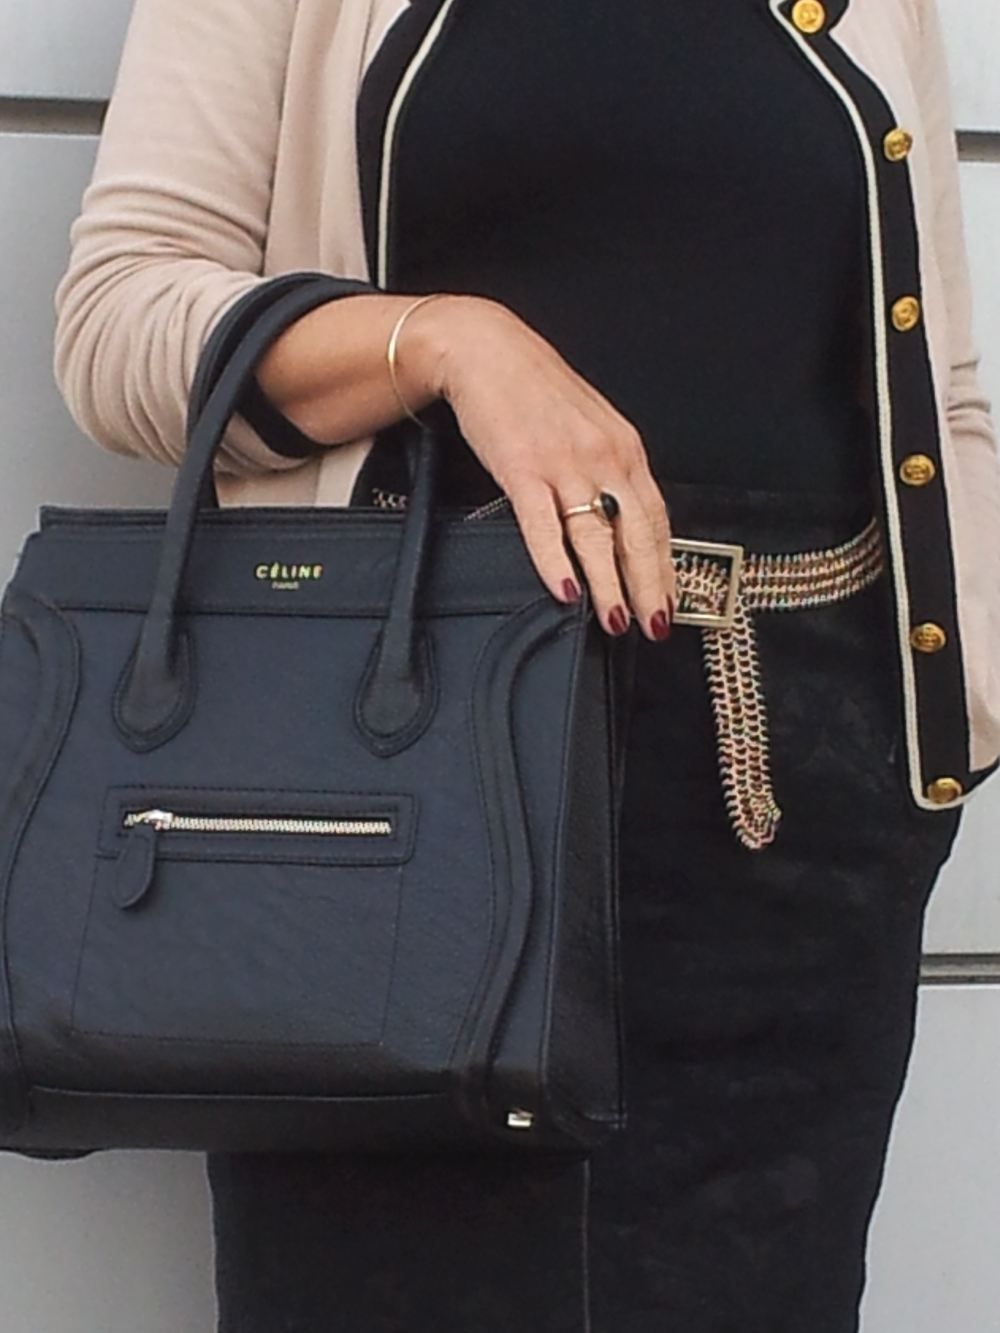 about celine bags - Milan Fashion Week | LifeStyle Over 40